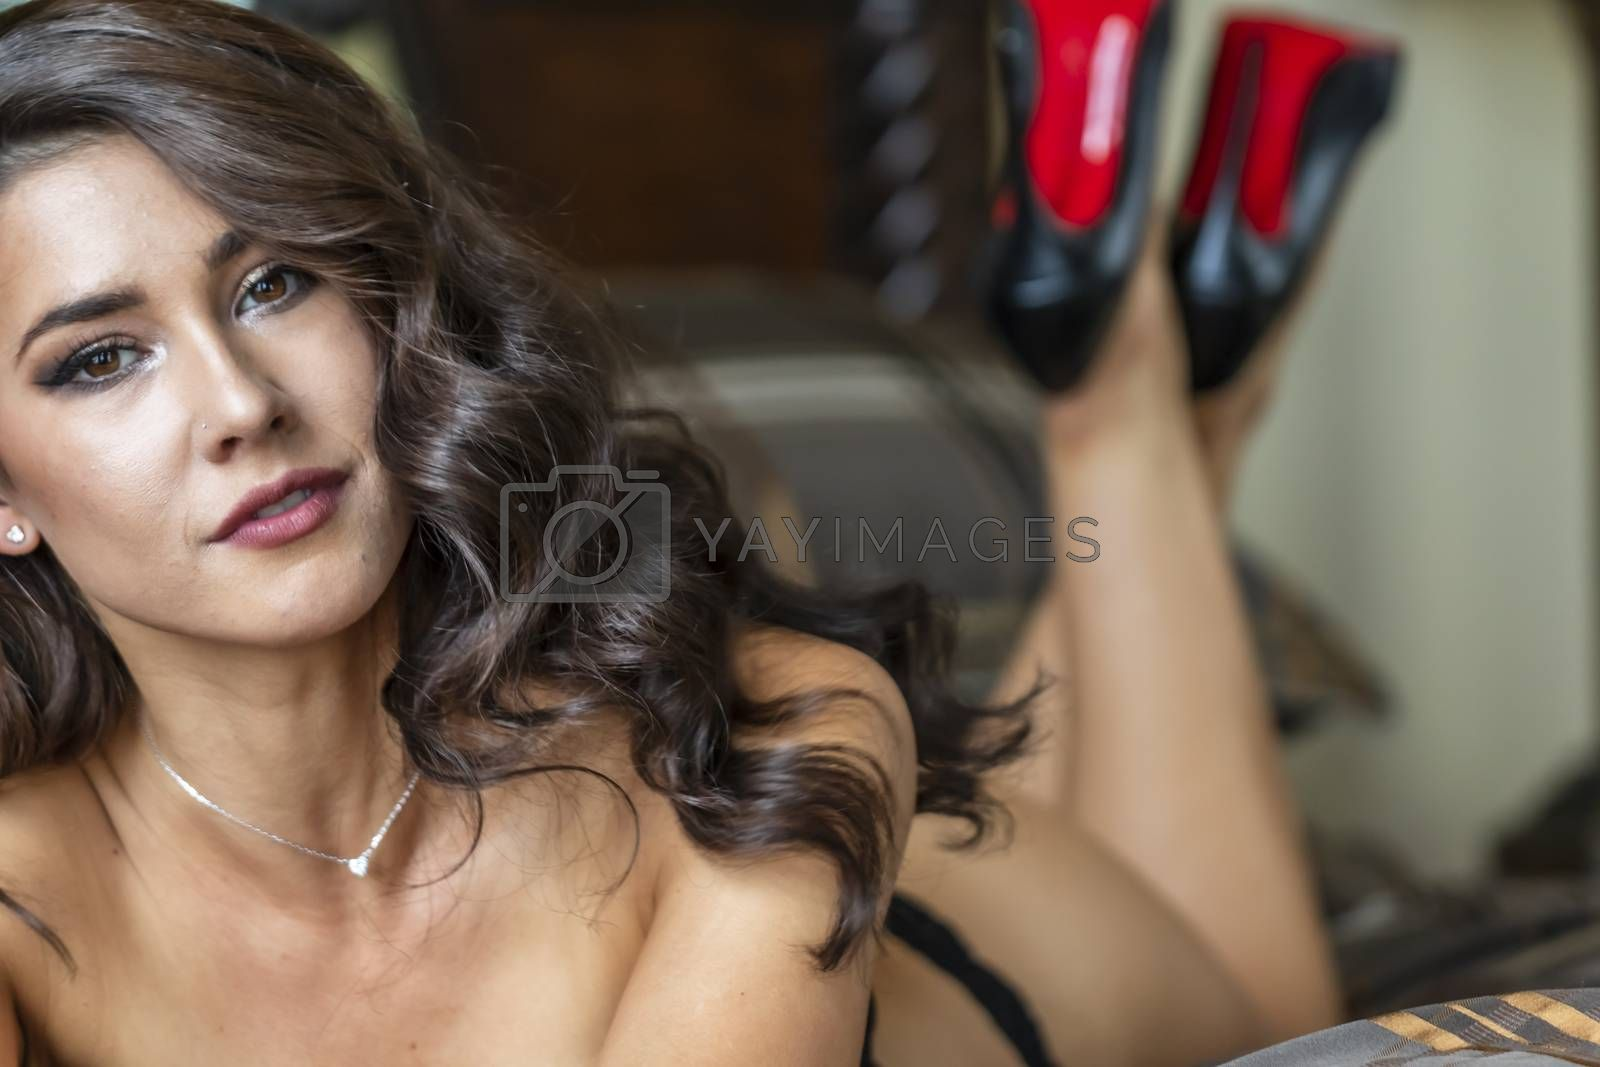 A Lovely Brunette Lingerie Model Poses In Lingerie In A Bedroom Environment by actionsports